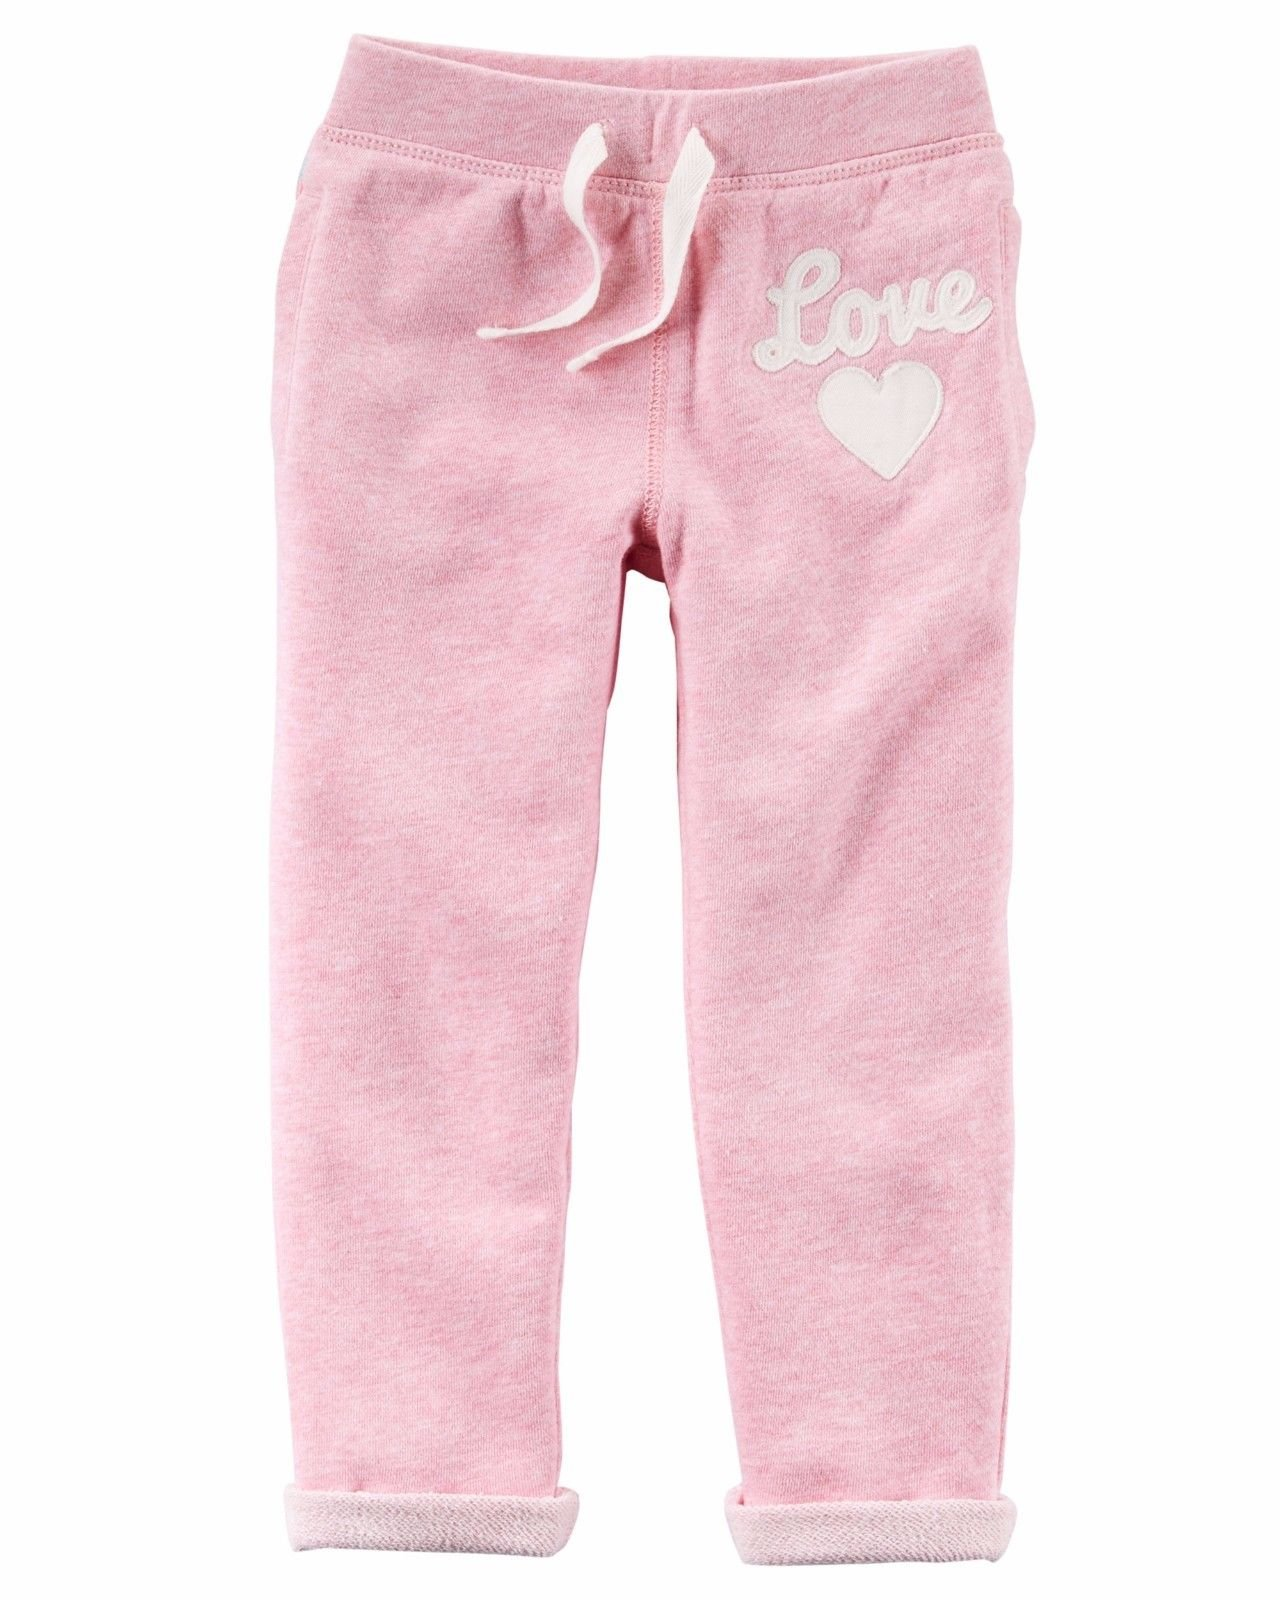 Carter's Girls' Pull-on French Terry Pants (7, Pink/Love) by Carter's (Image #1)